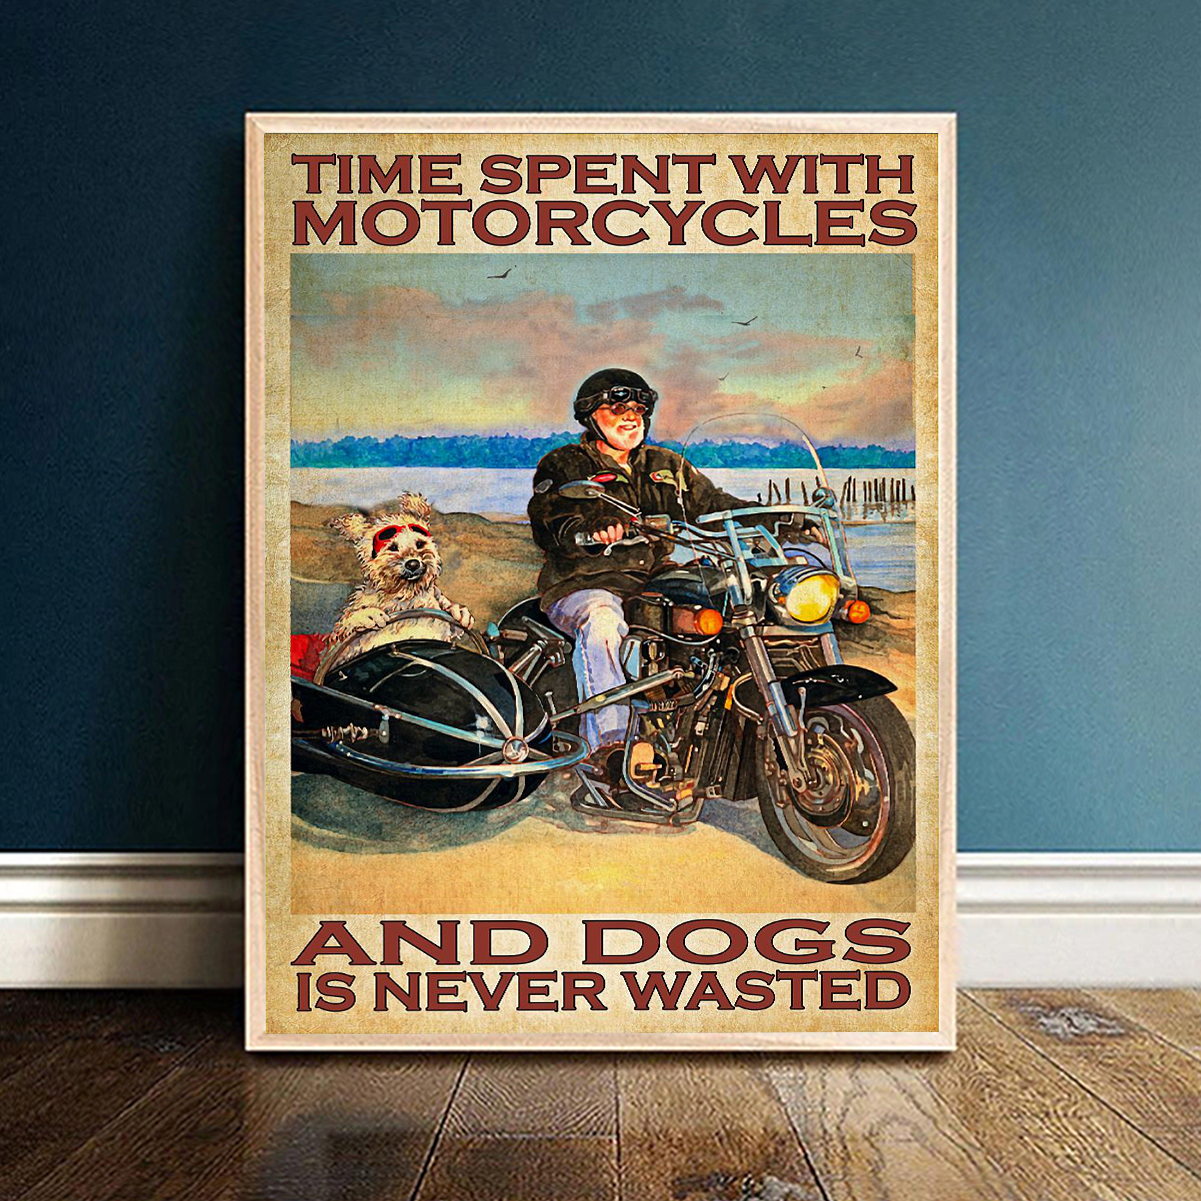 Time spent with motorcycles and dogs is never wasted poster A1